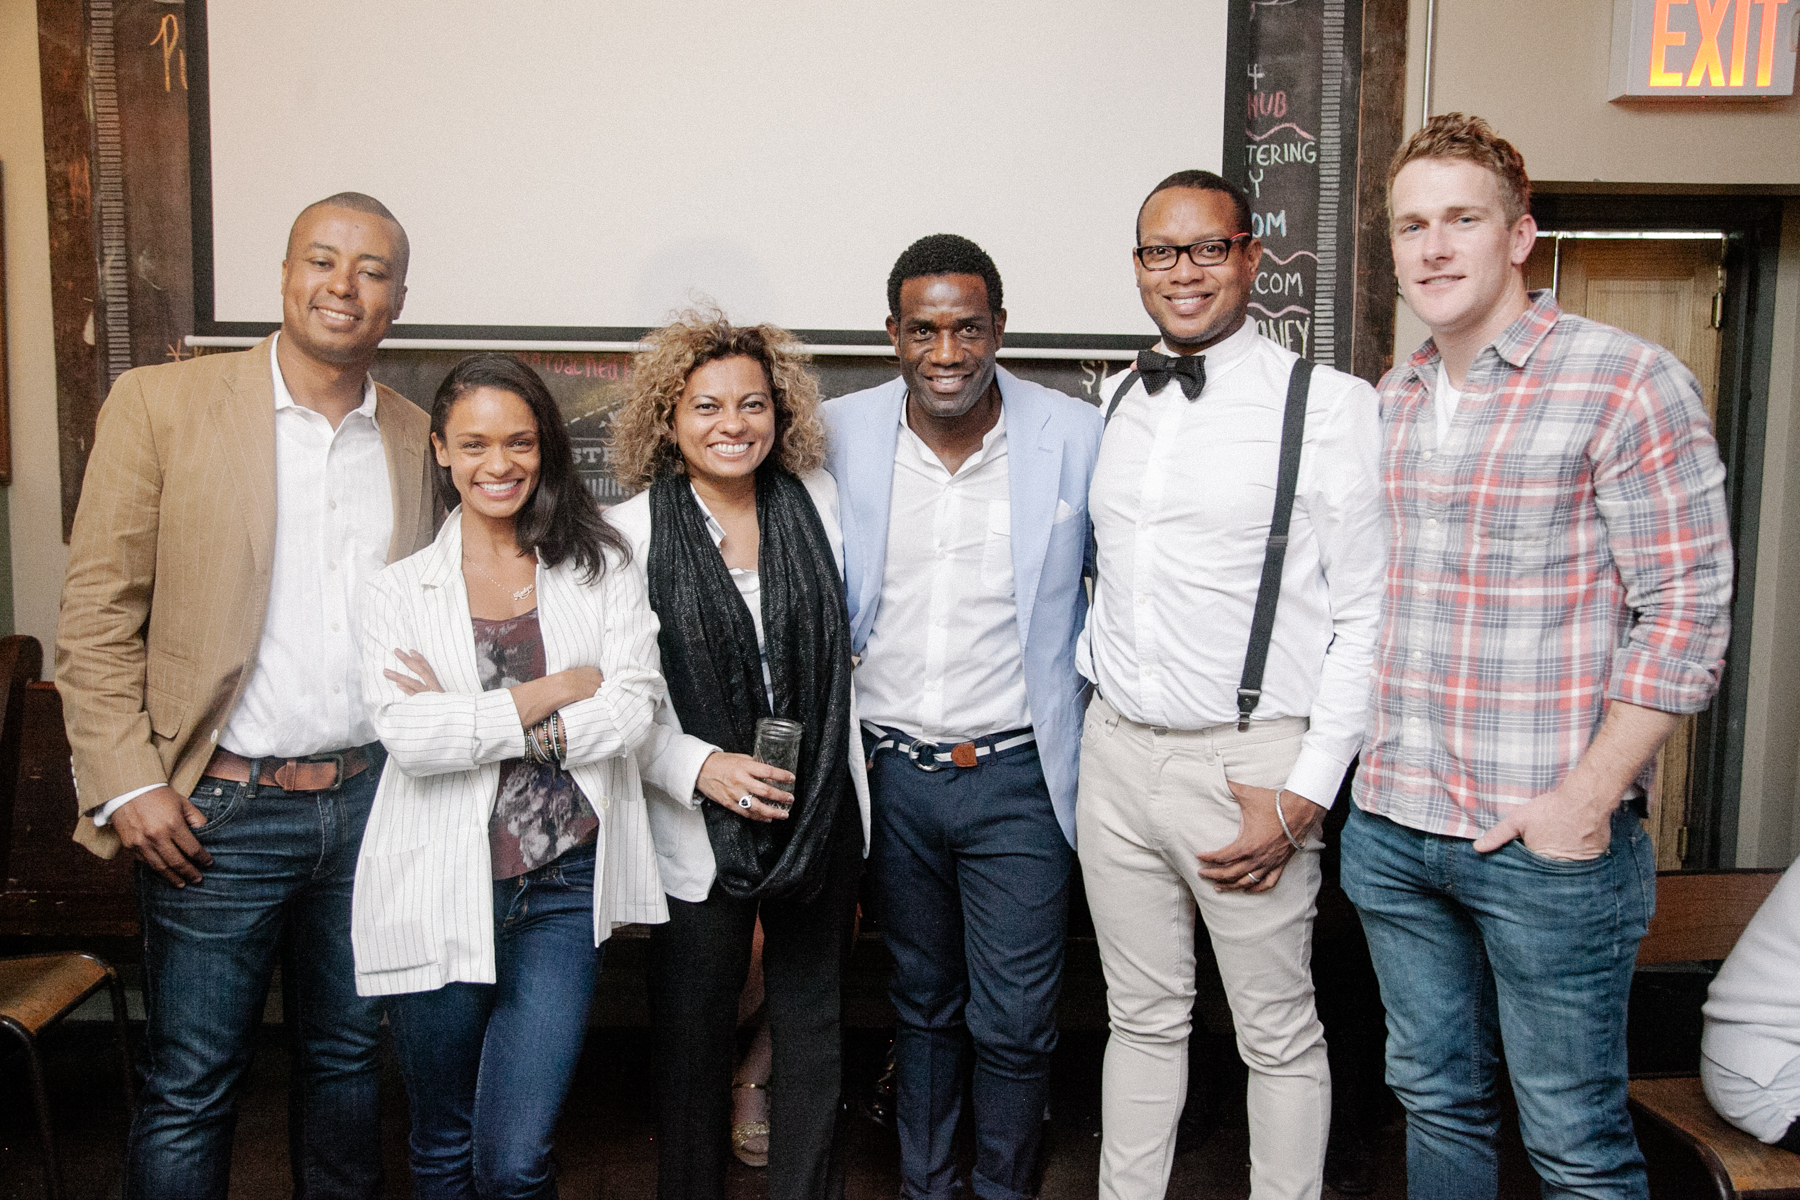 Faride Precile- Director of Communications NAMIC National, Kandyse McClure, Dianne Bisson, Robbie Earle – Former Footballer and TV Host, Ian Royer, Mike Prinville NBC Producer.